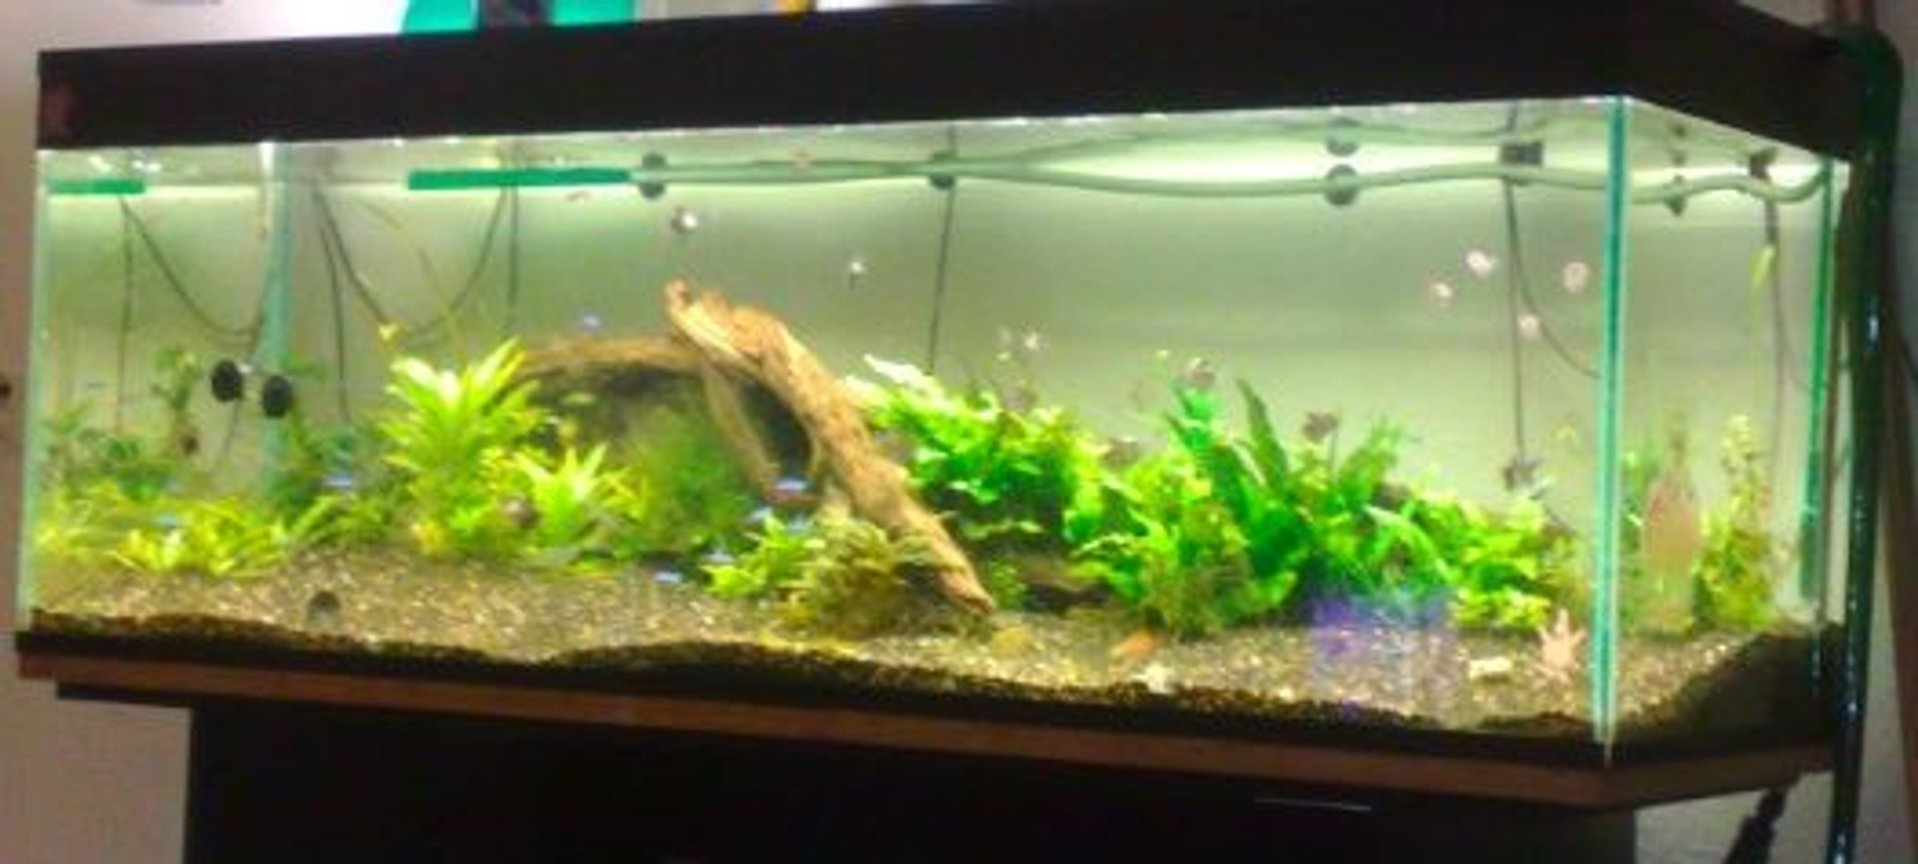 105 gallons planted tank (mostly live plants and fish) - Got No Money No Work, So It Does Not Look So Nice :(